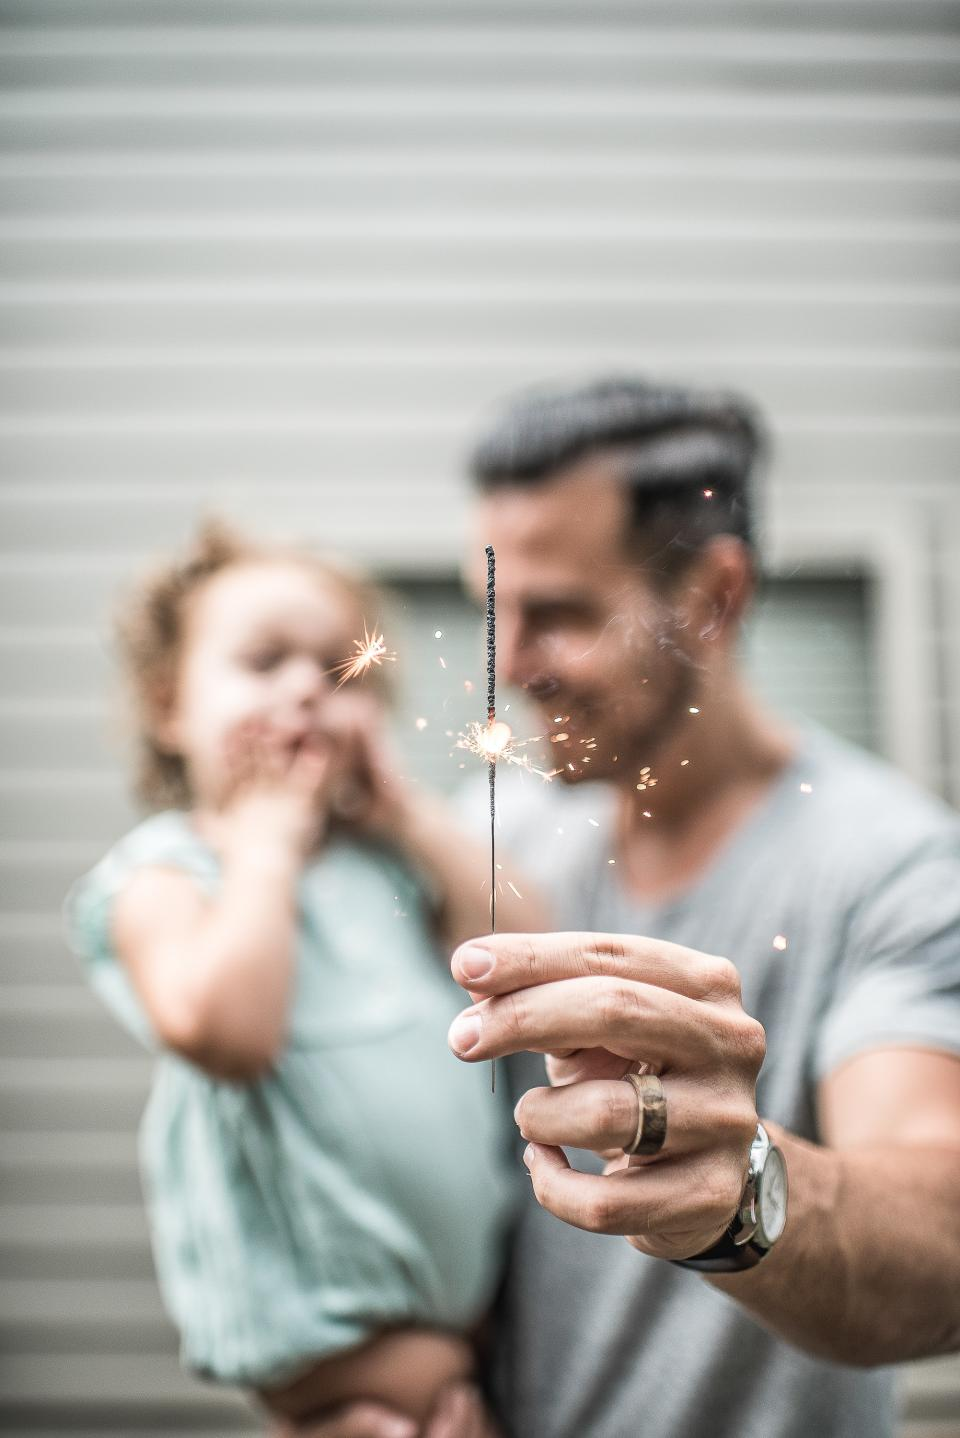 people, parent, man, father, carry, daughter, kid baby, child, hand, stick, sparkle, light, ring, watch, blur